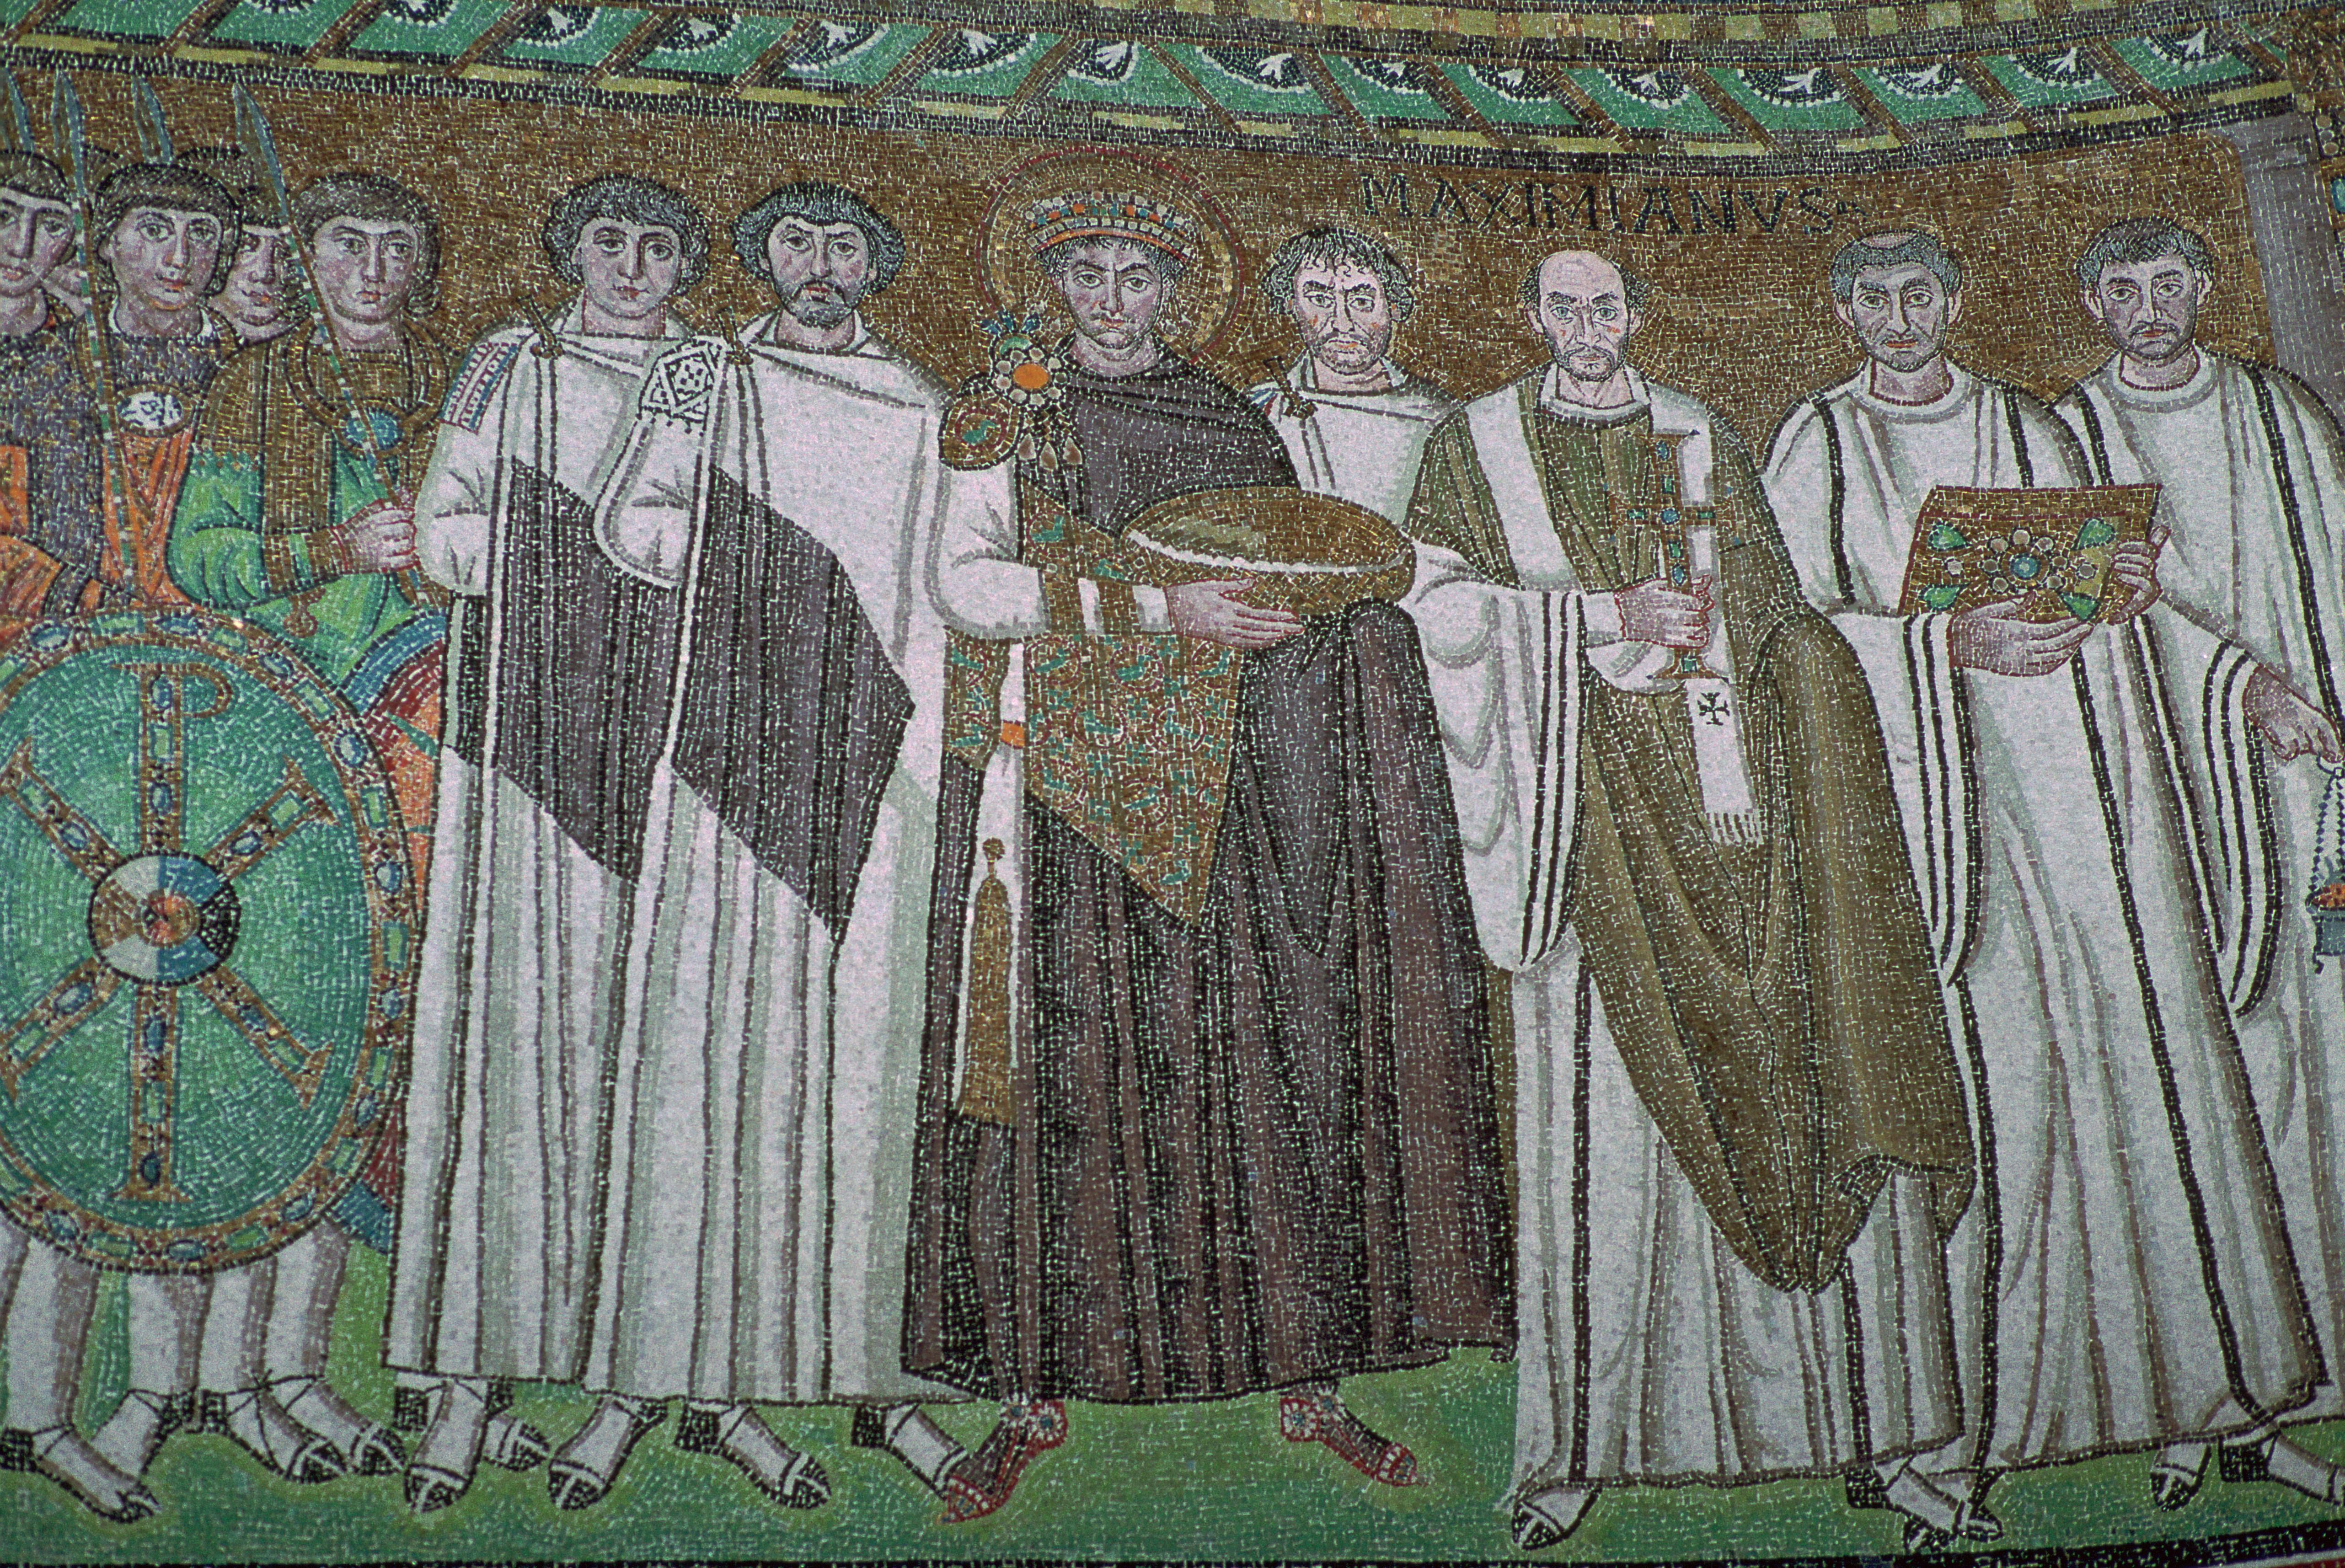 Mosaic of the Byzantine Emperor Justinian I and his court, 6th century.